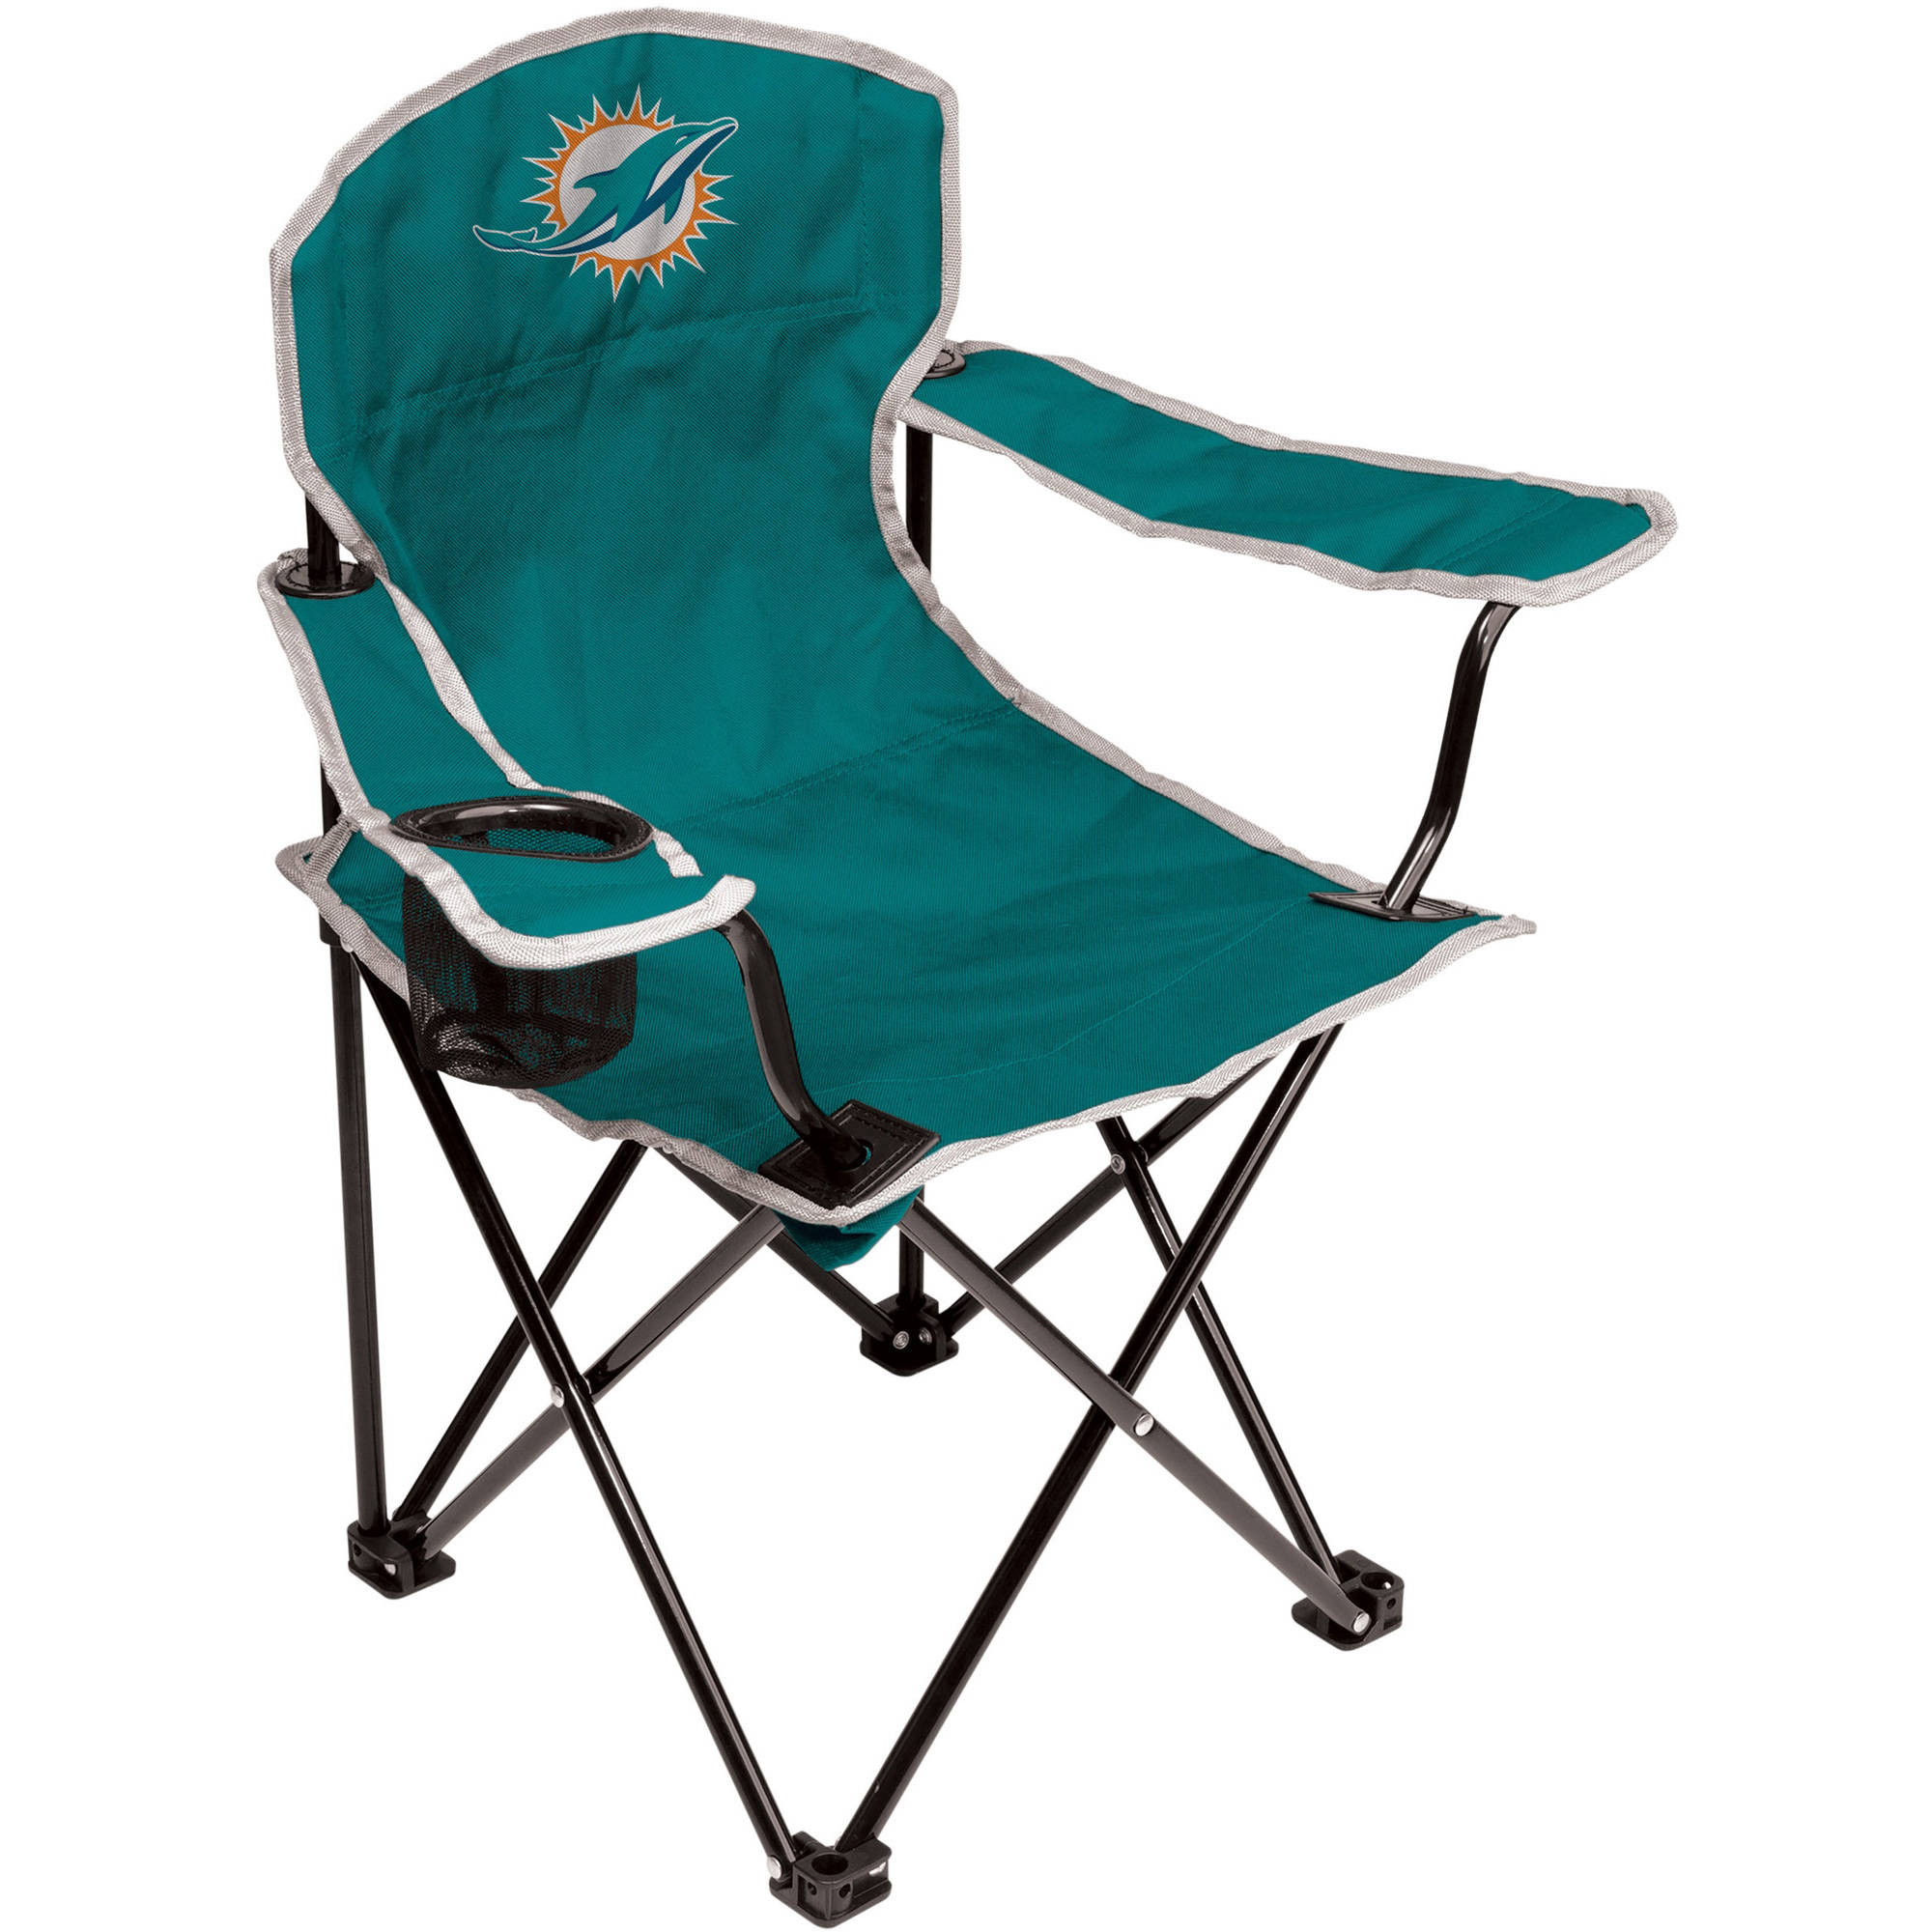 NFL Miami Dolphins Youth Size Tailgate Chair from Coleman by Rawlings